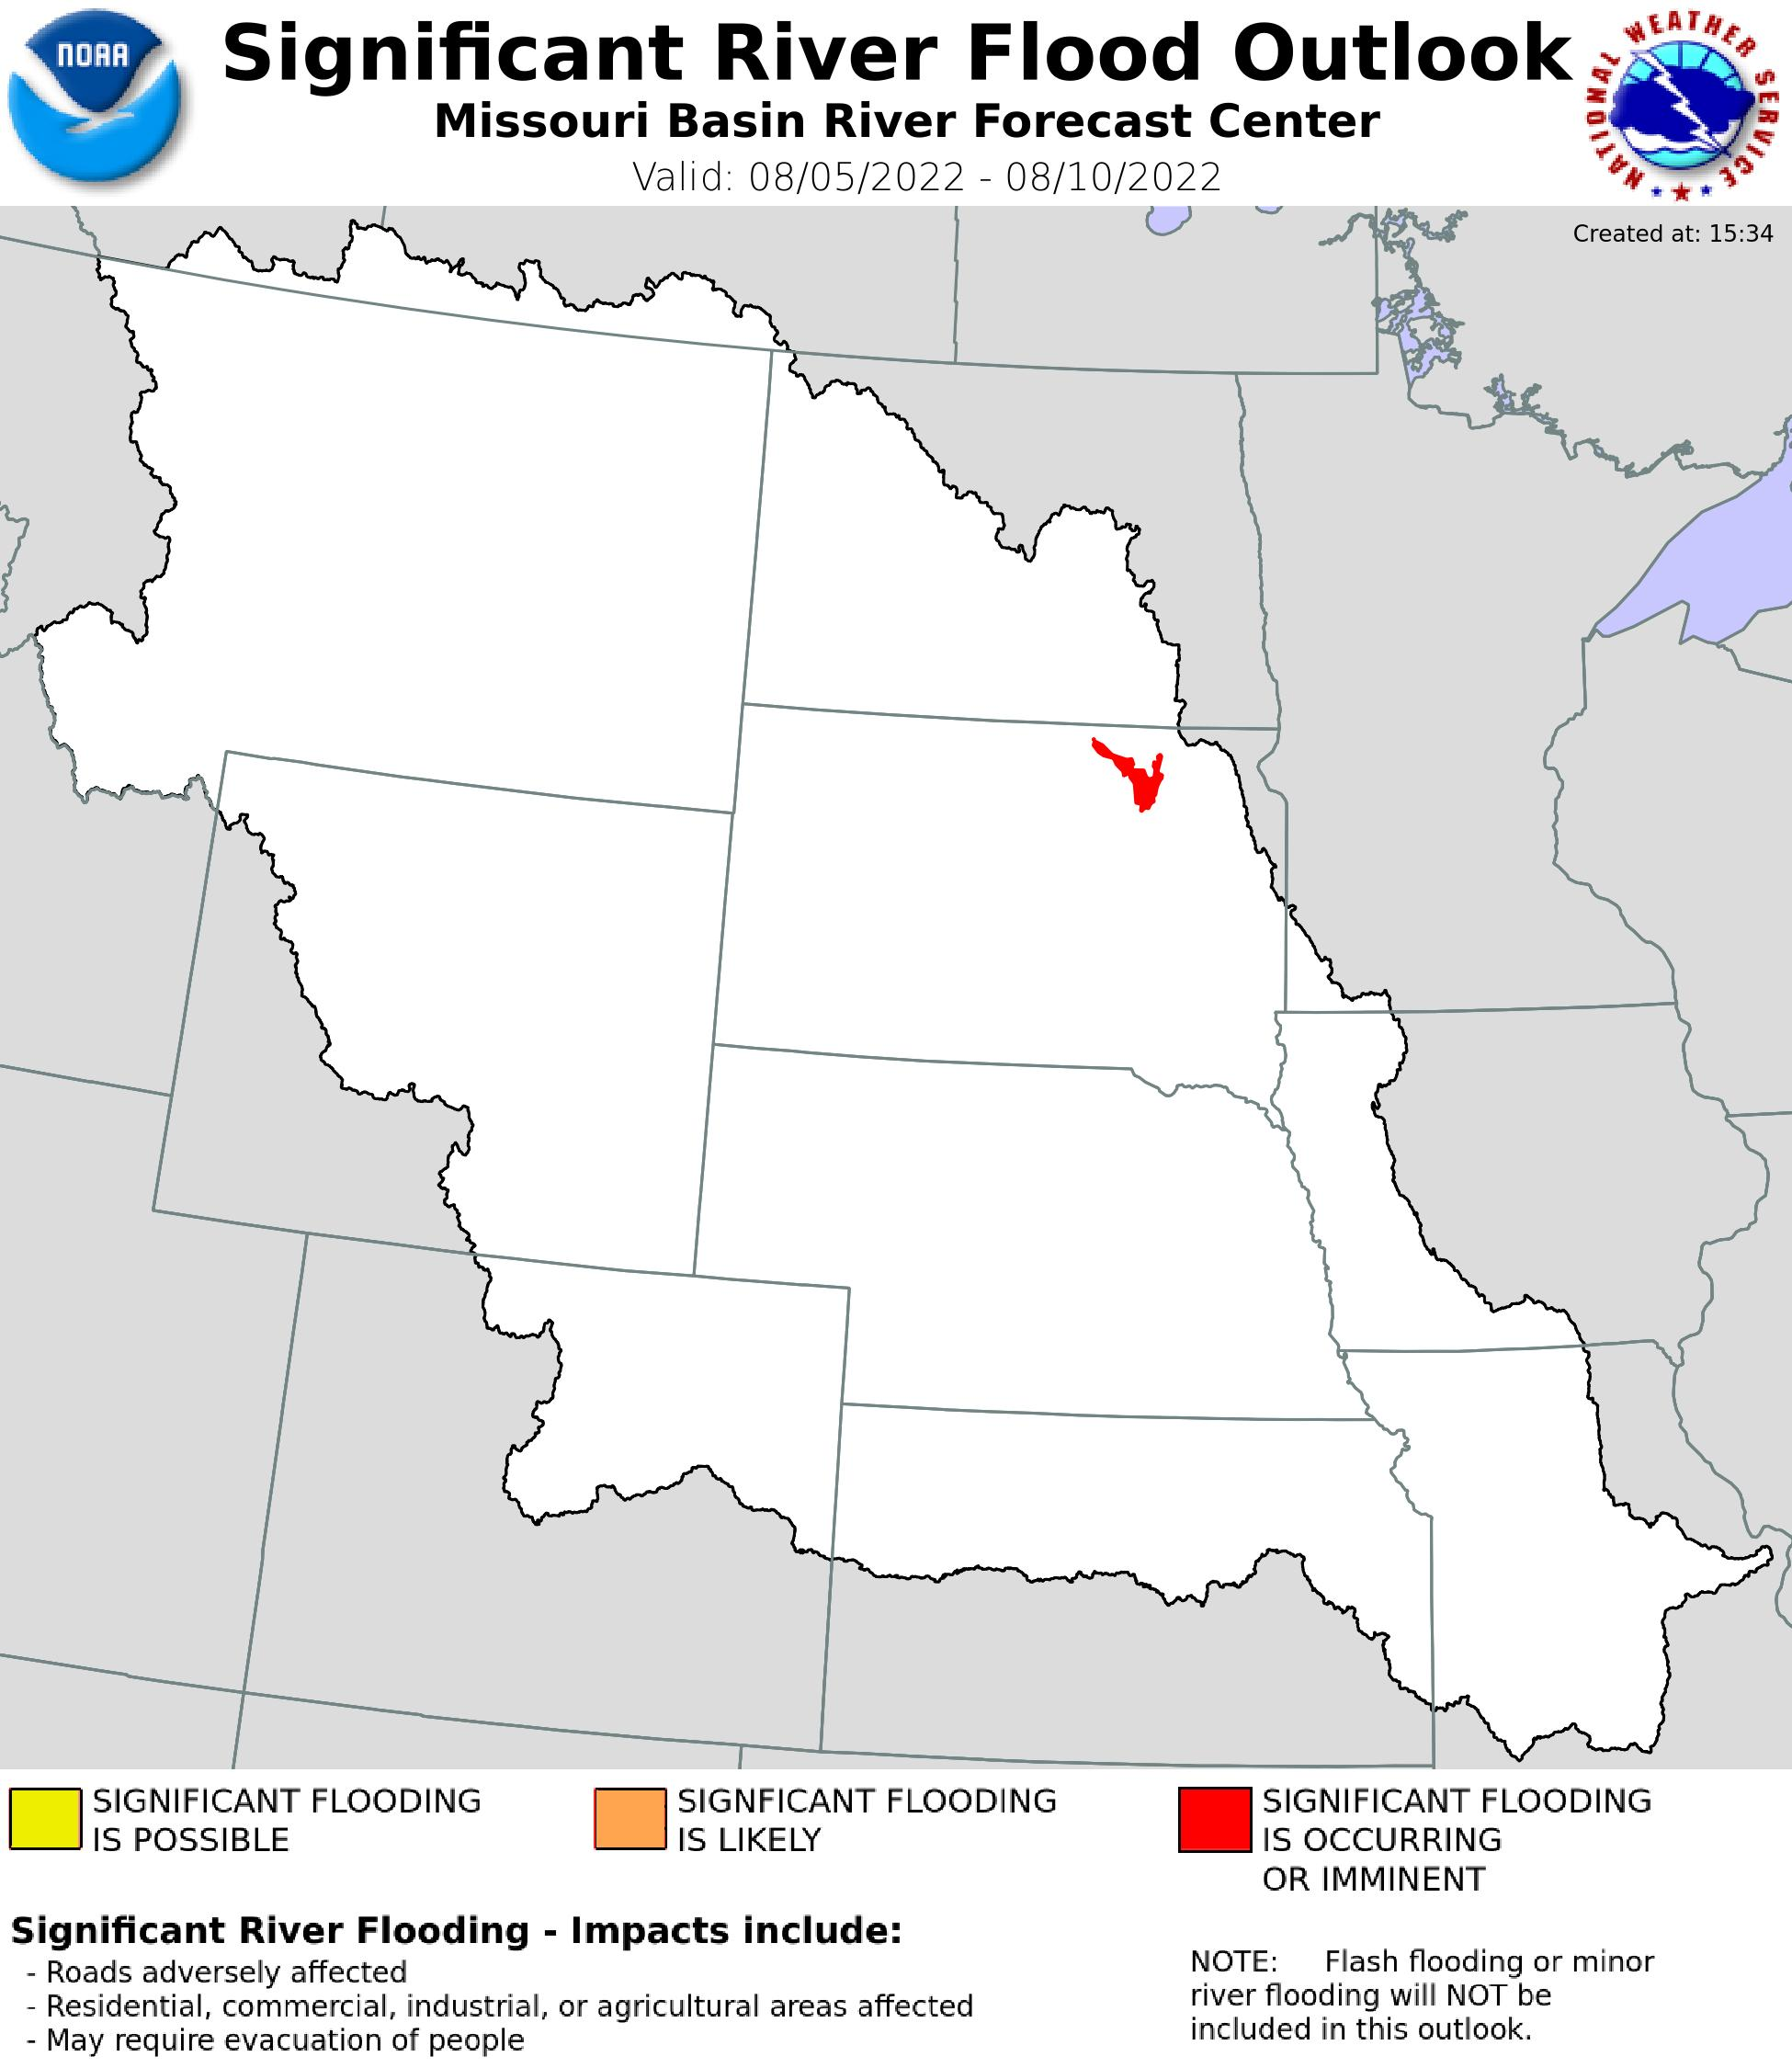 5-Day Flood Outlook Potential